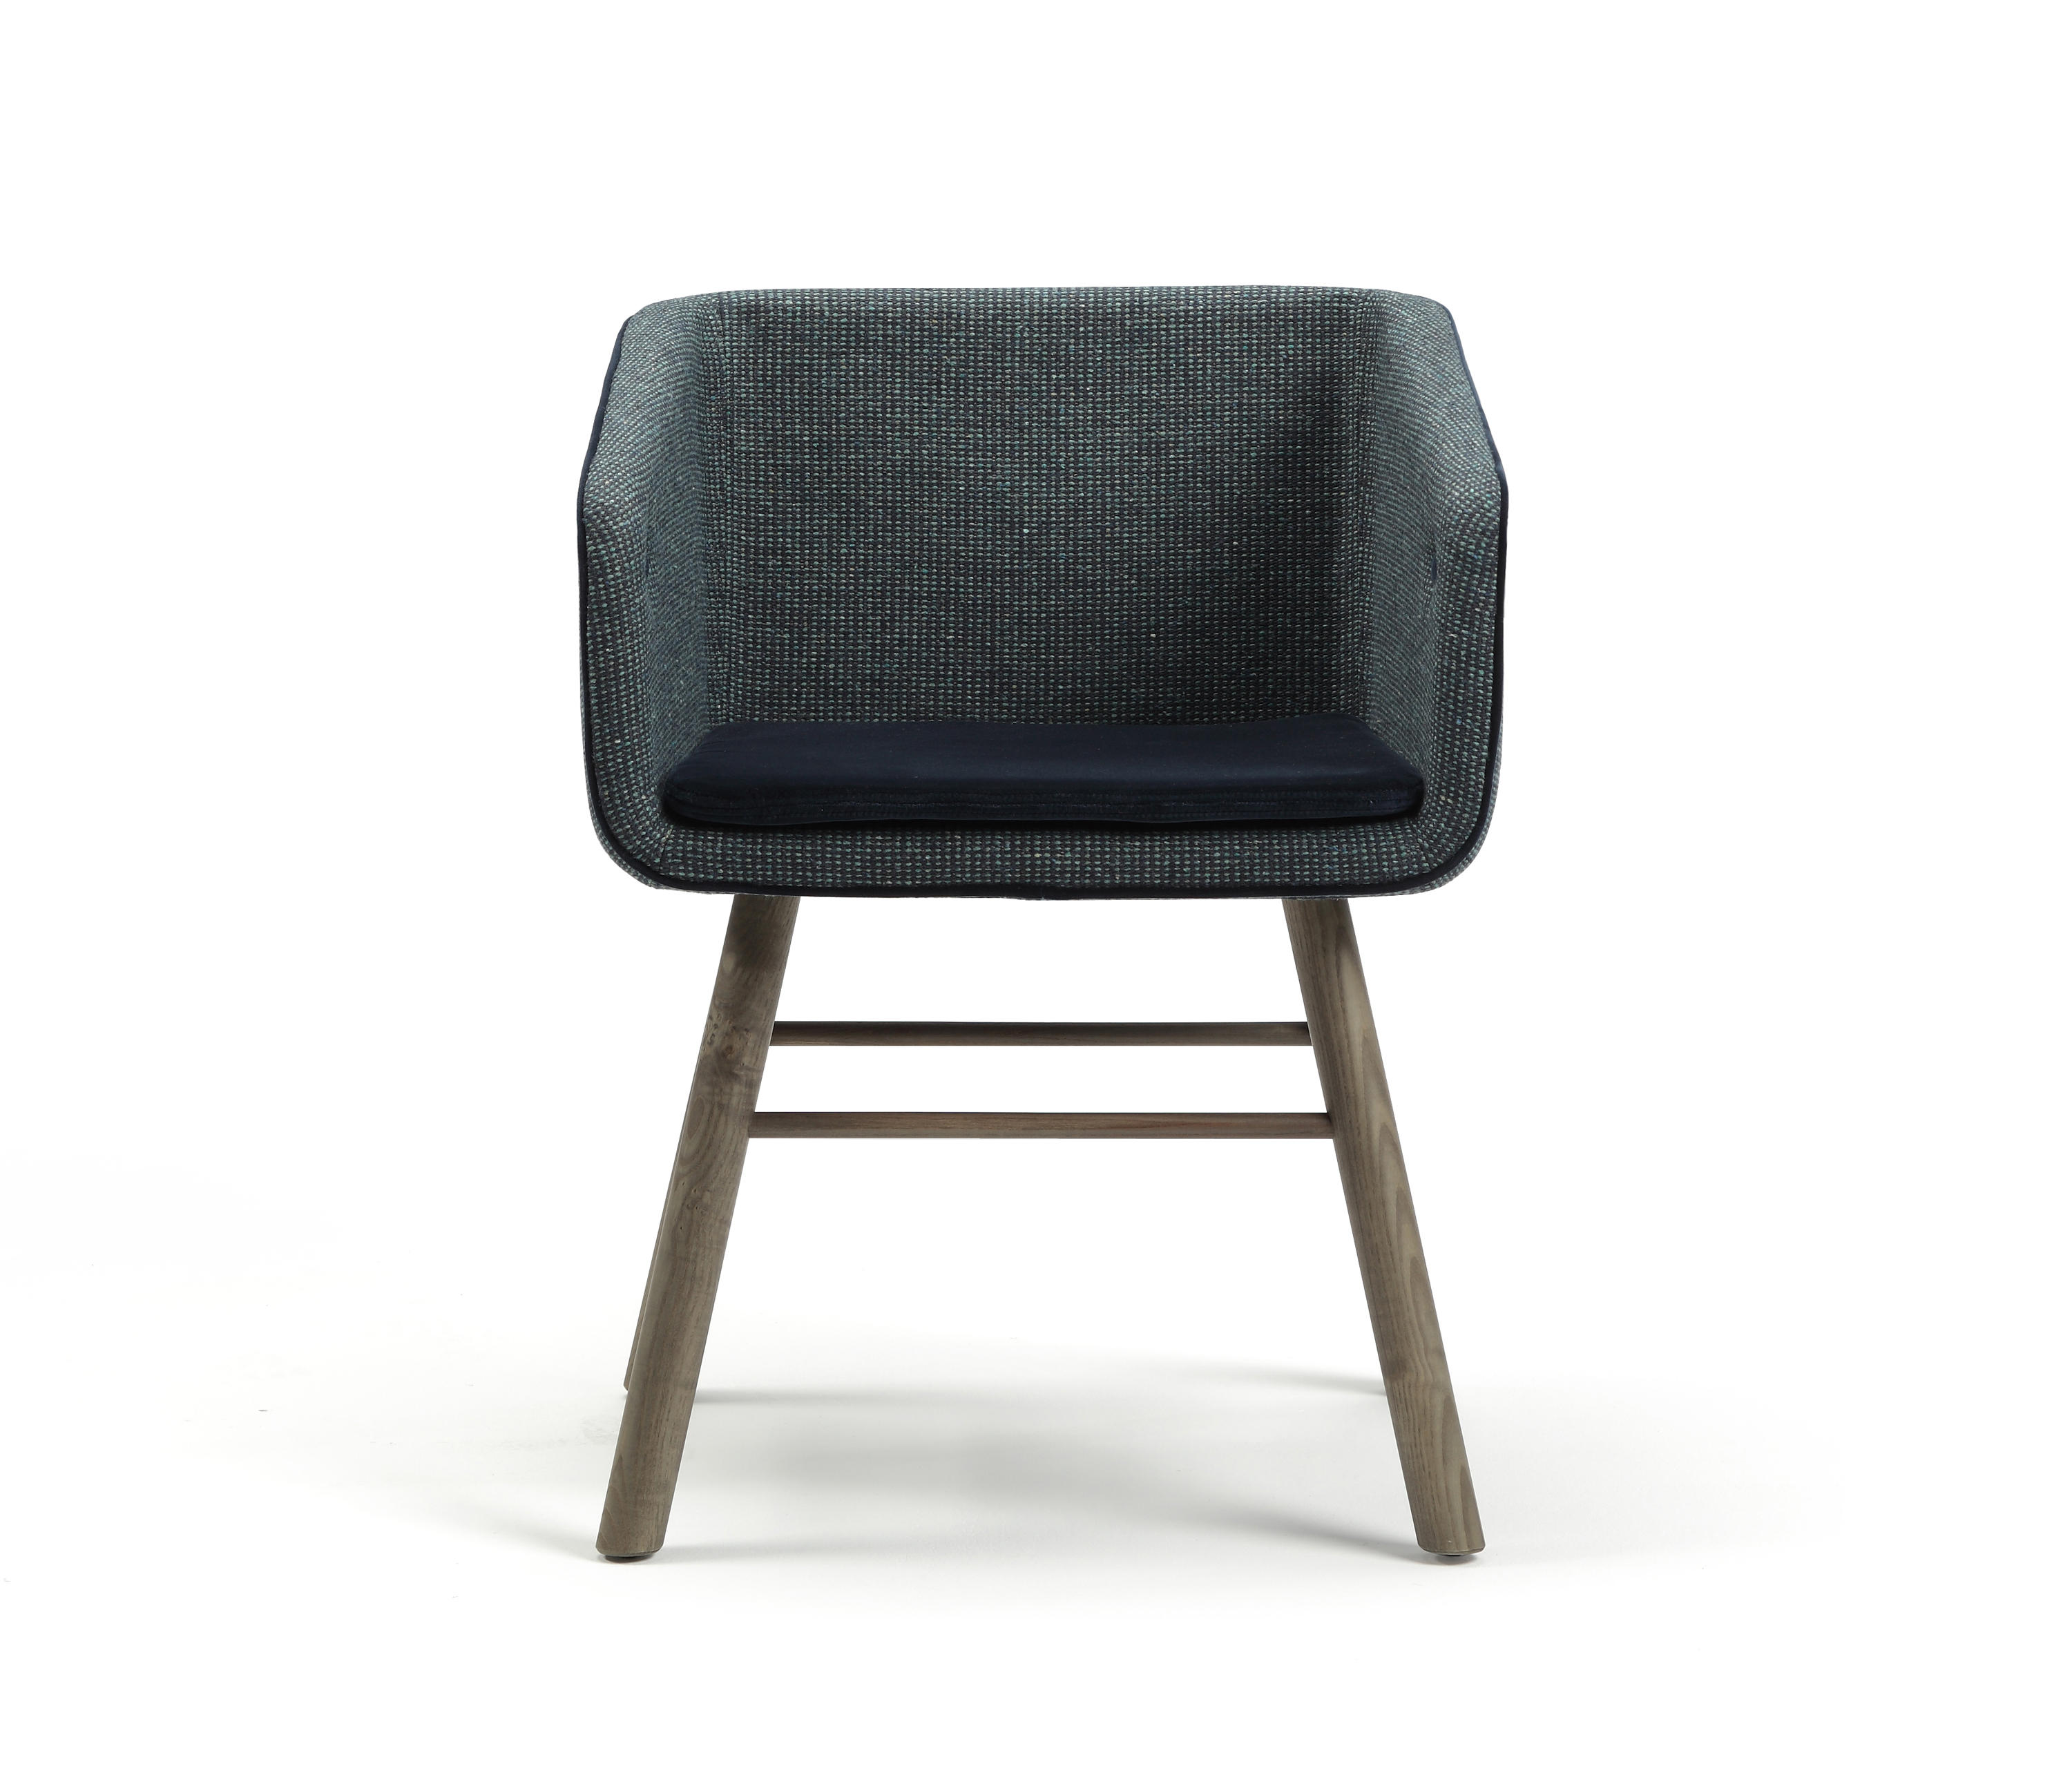 Collar Mao Restaurant Chairs From Sancal Architonic # Muebles Latelier